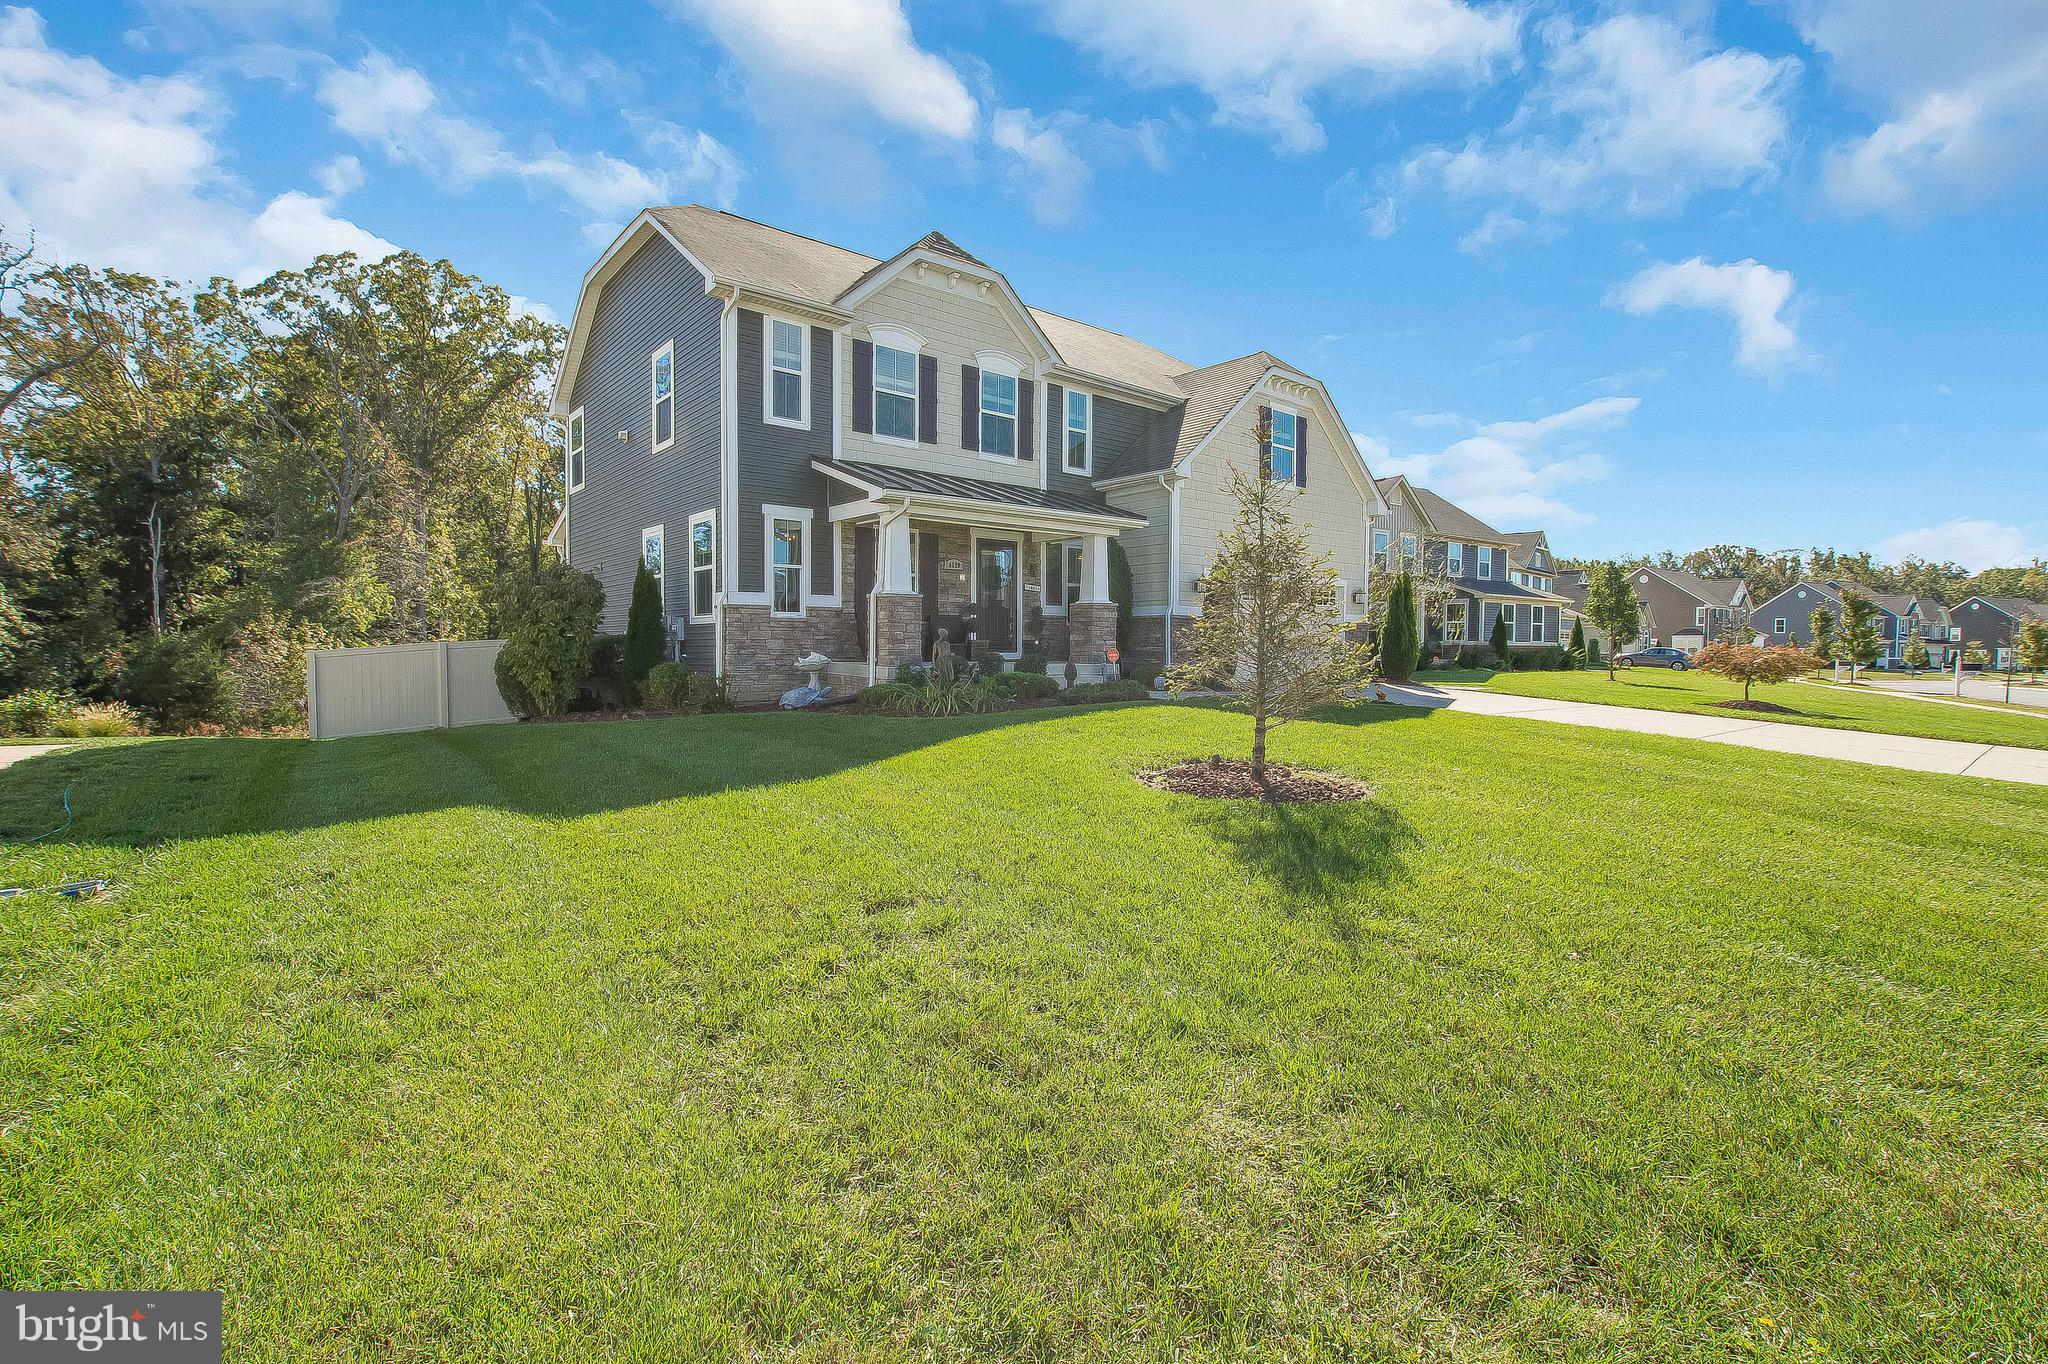 4090 SUNRIDGE LANE, WHITE PLAINS, MD 20695